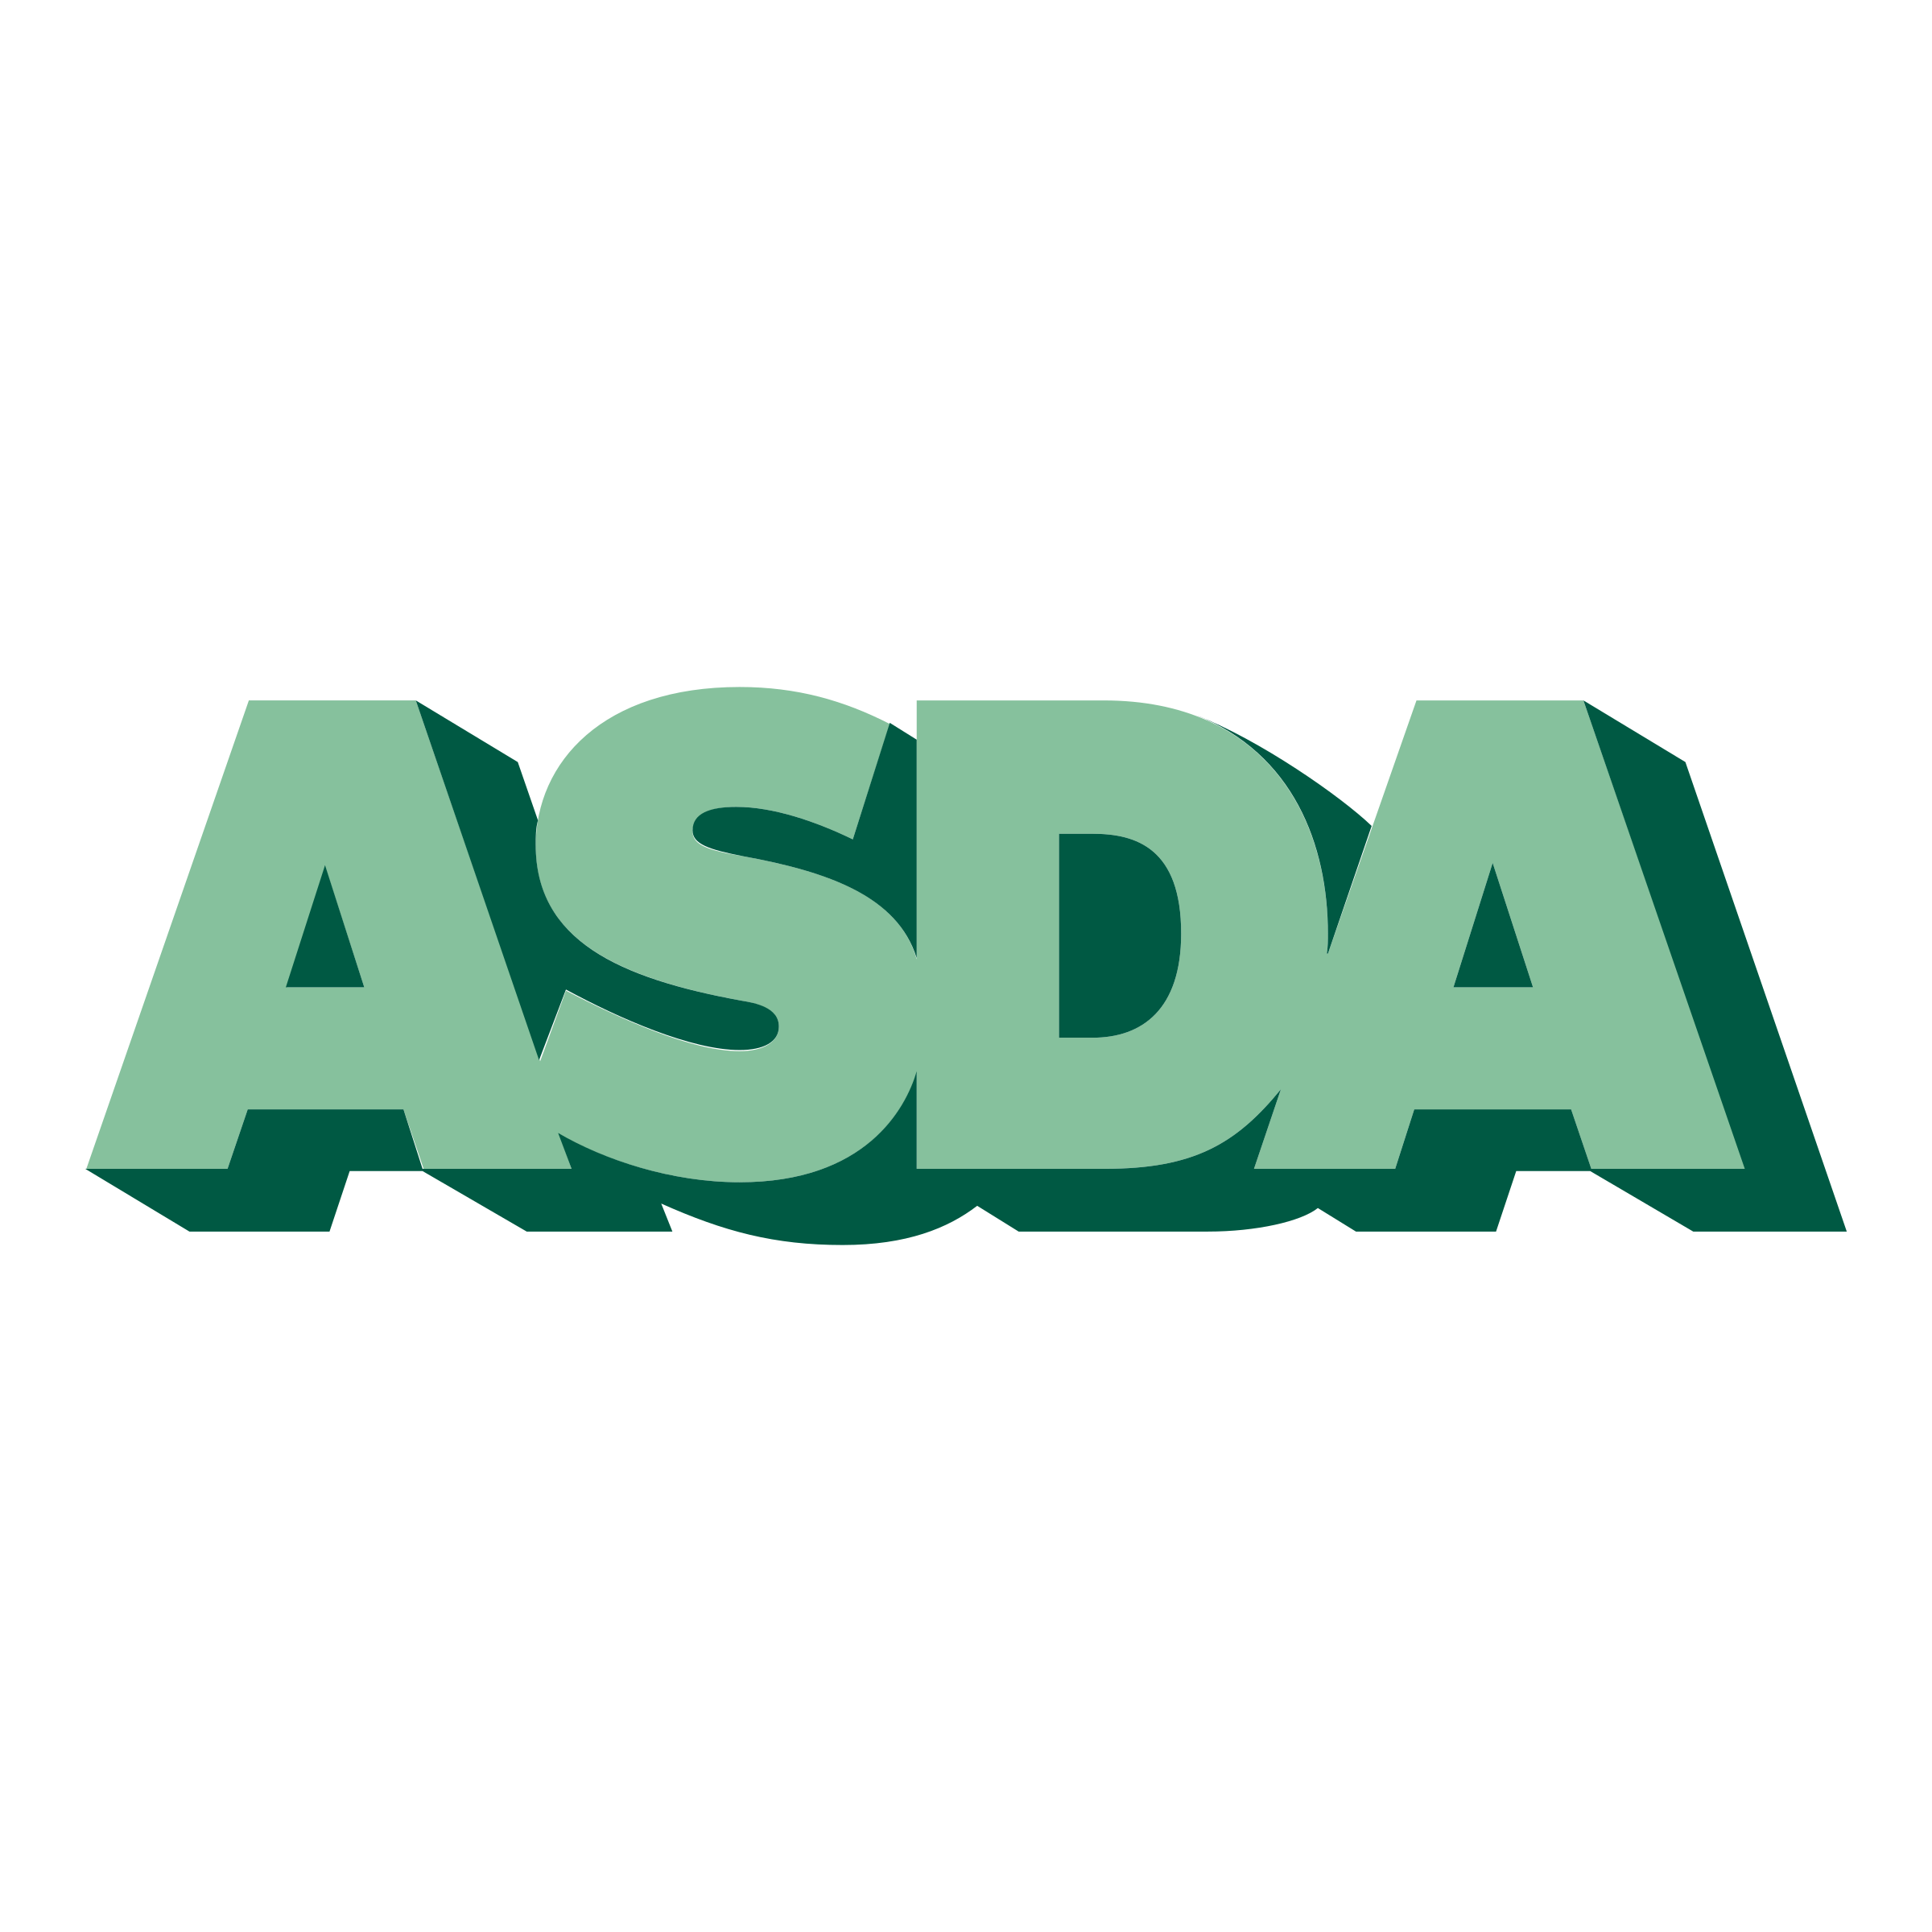 ASDA Logo PNG Transparent & SVG Vector.